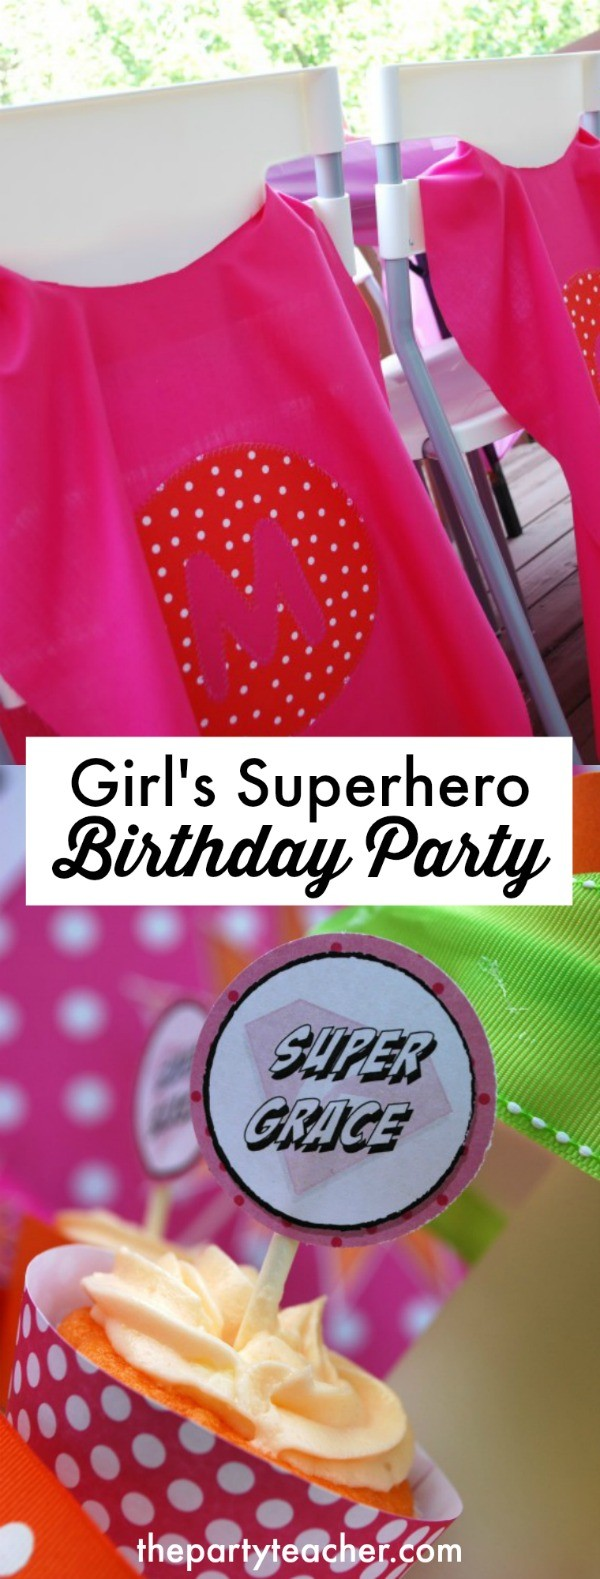 Girl's superhero birthday party by LillyPaul Designs featured on The Party Teacher